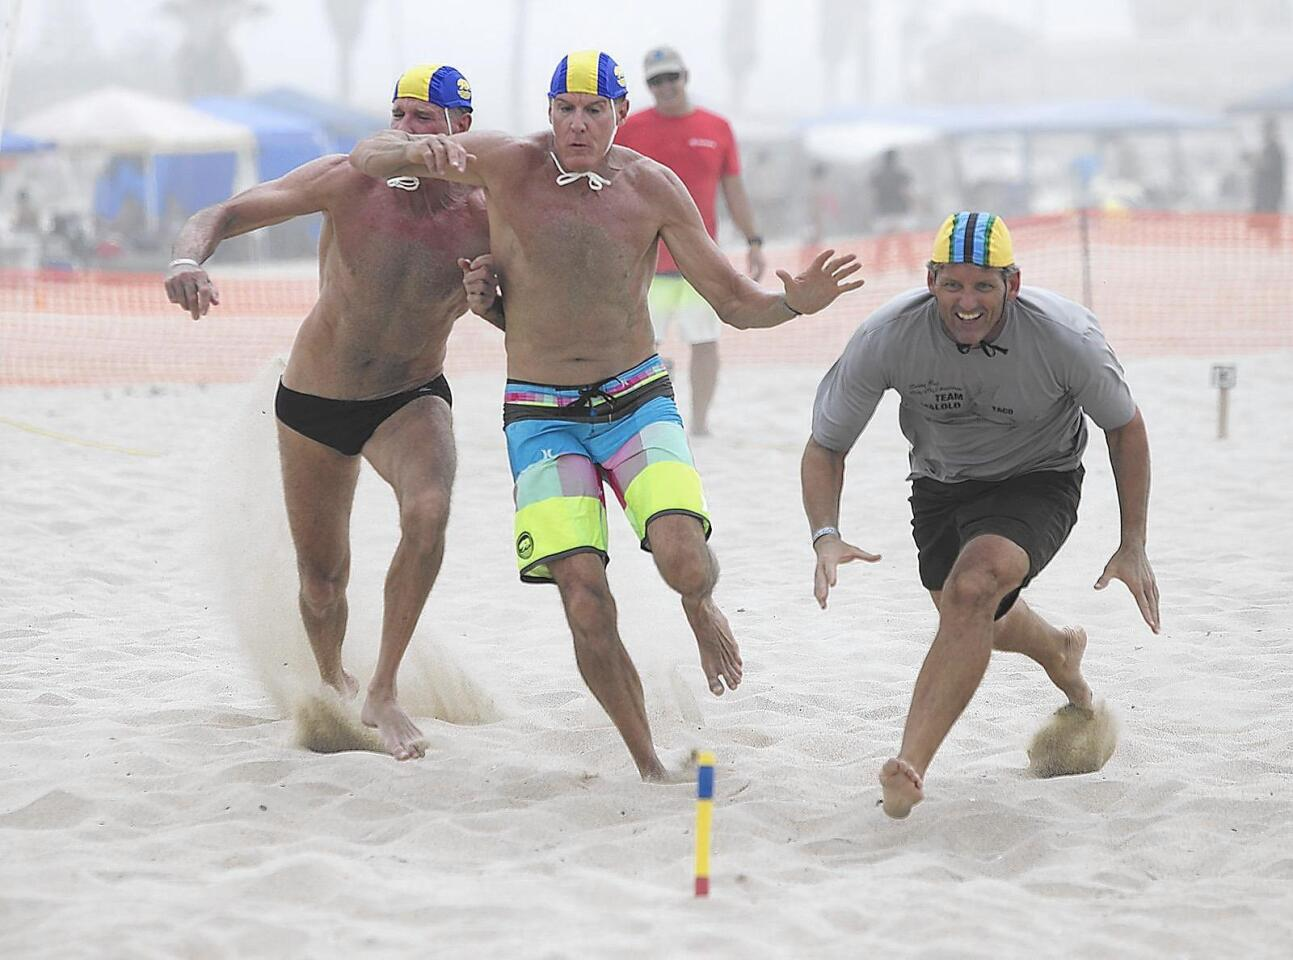 Photo Gallery: 2016 California Surf Lifesaving Championships at Huntington State Beach